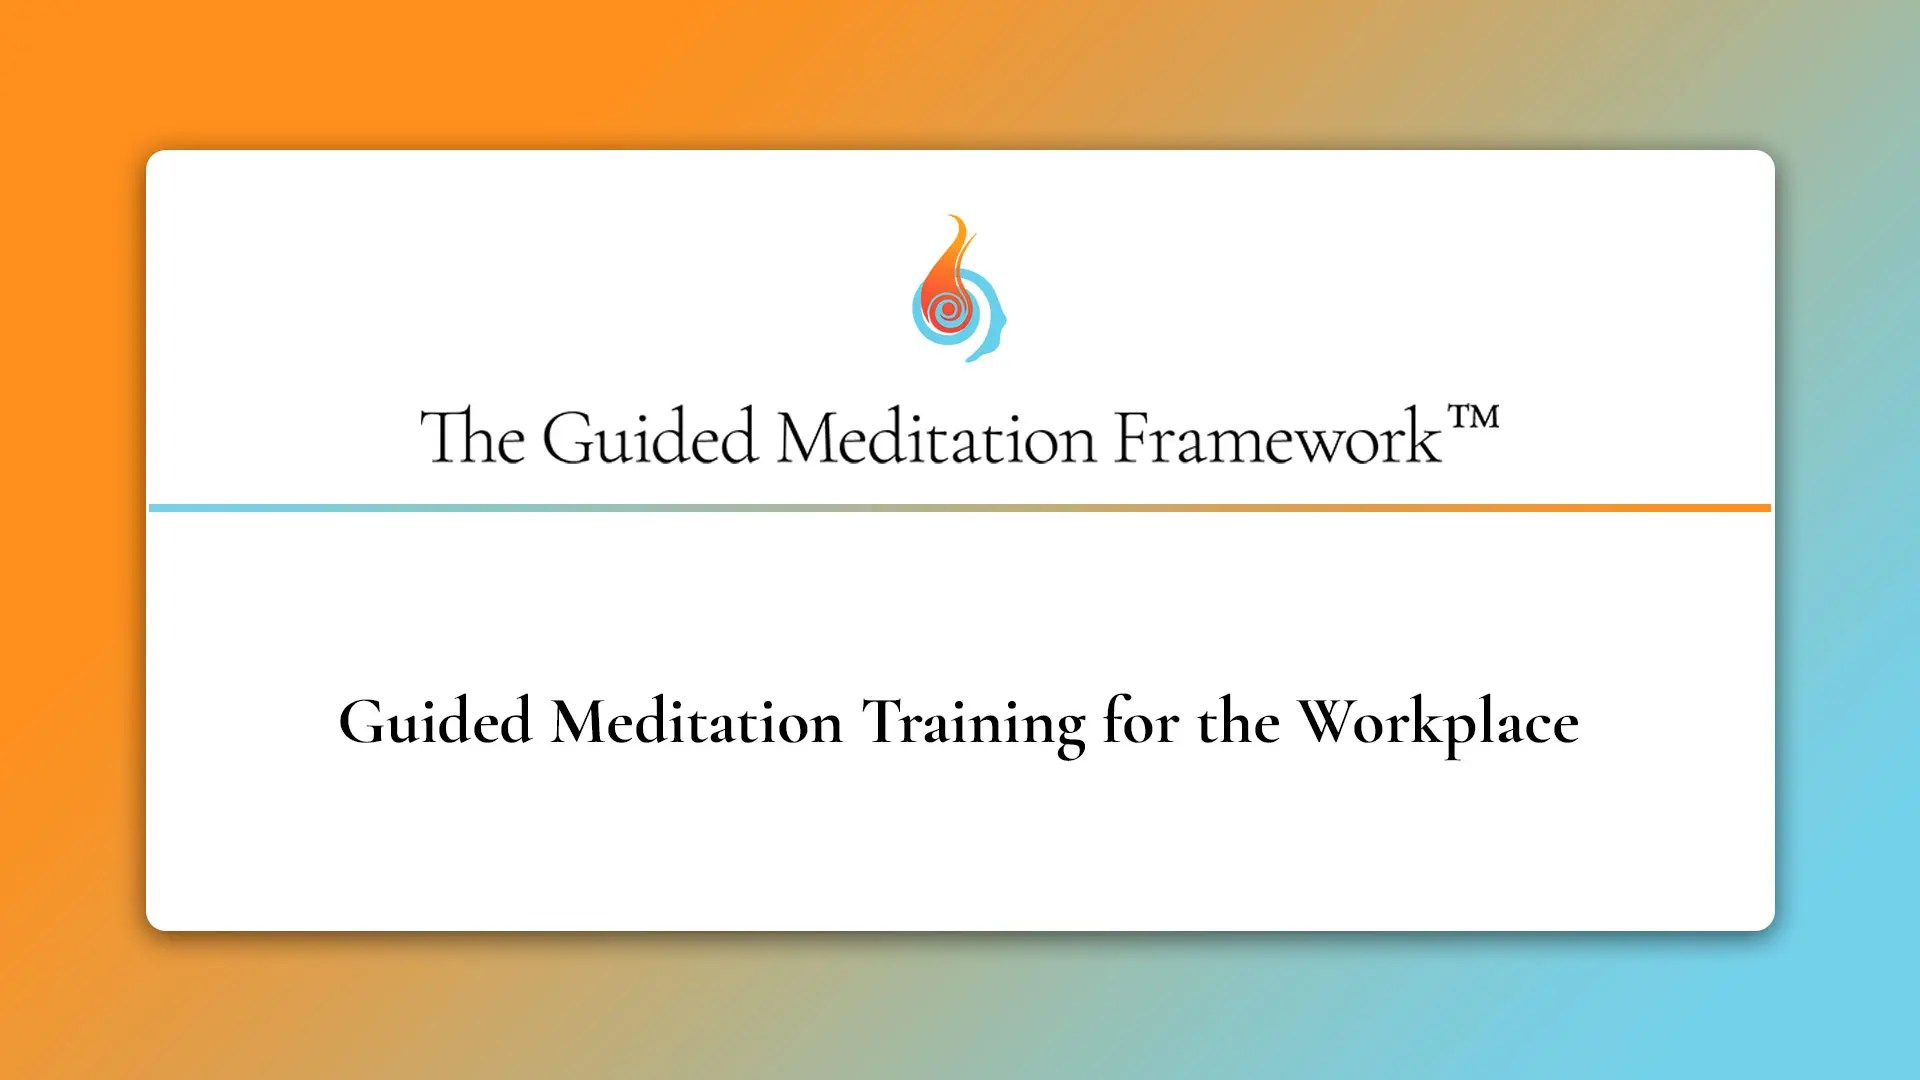 The Guided Meditation Framework for the workplace